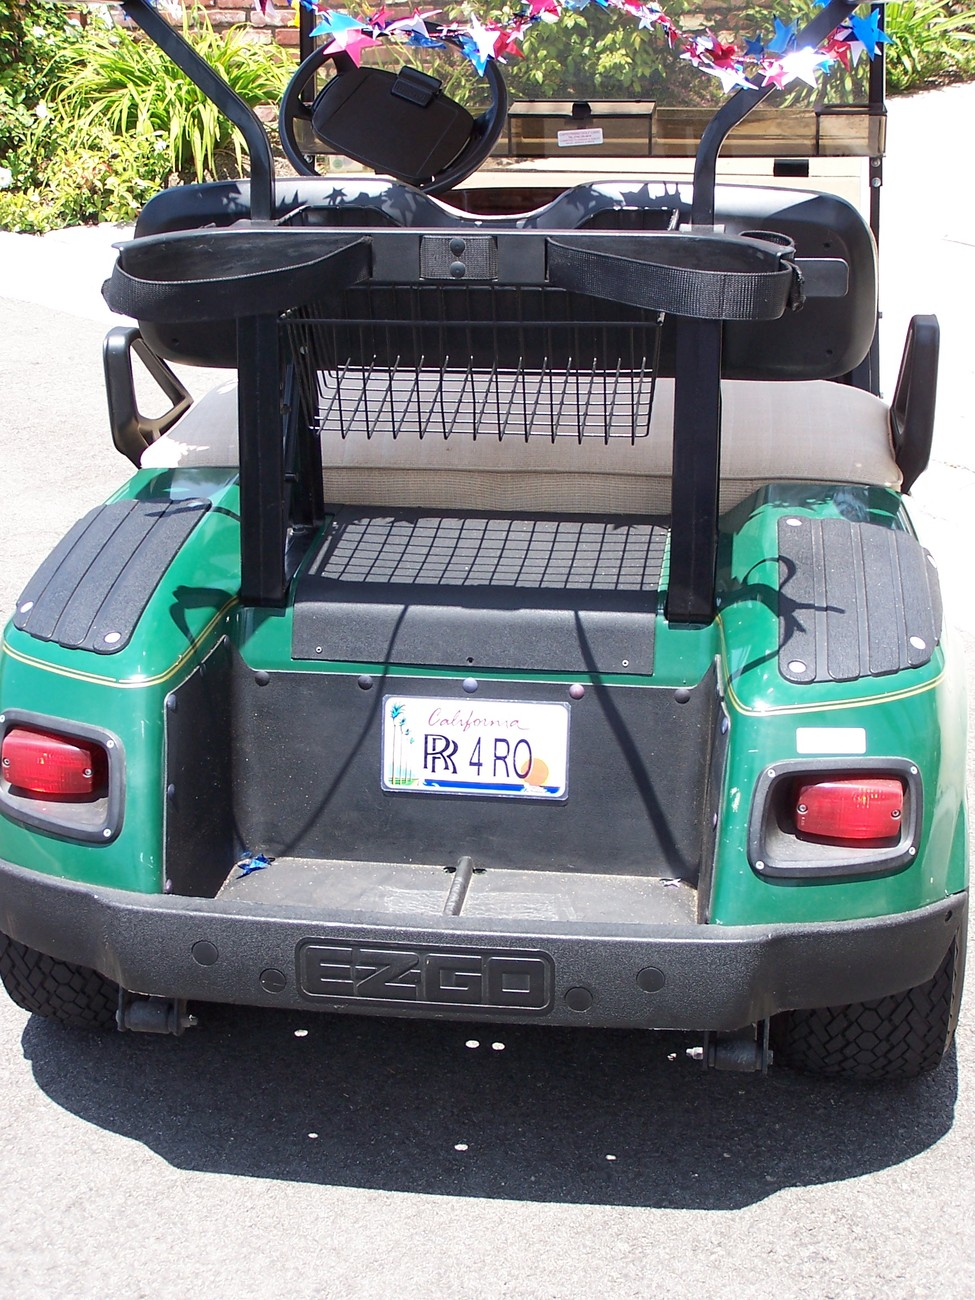 Custom Personalized Connecticut golf cart, mobility scooter license plate